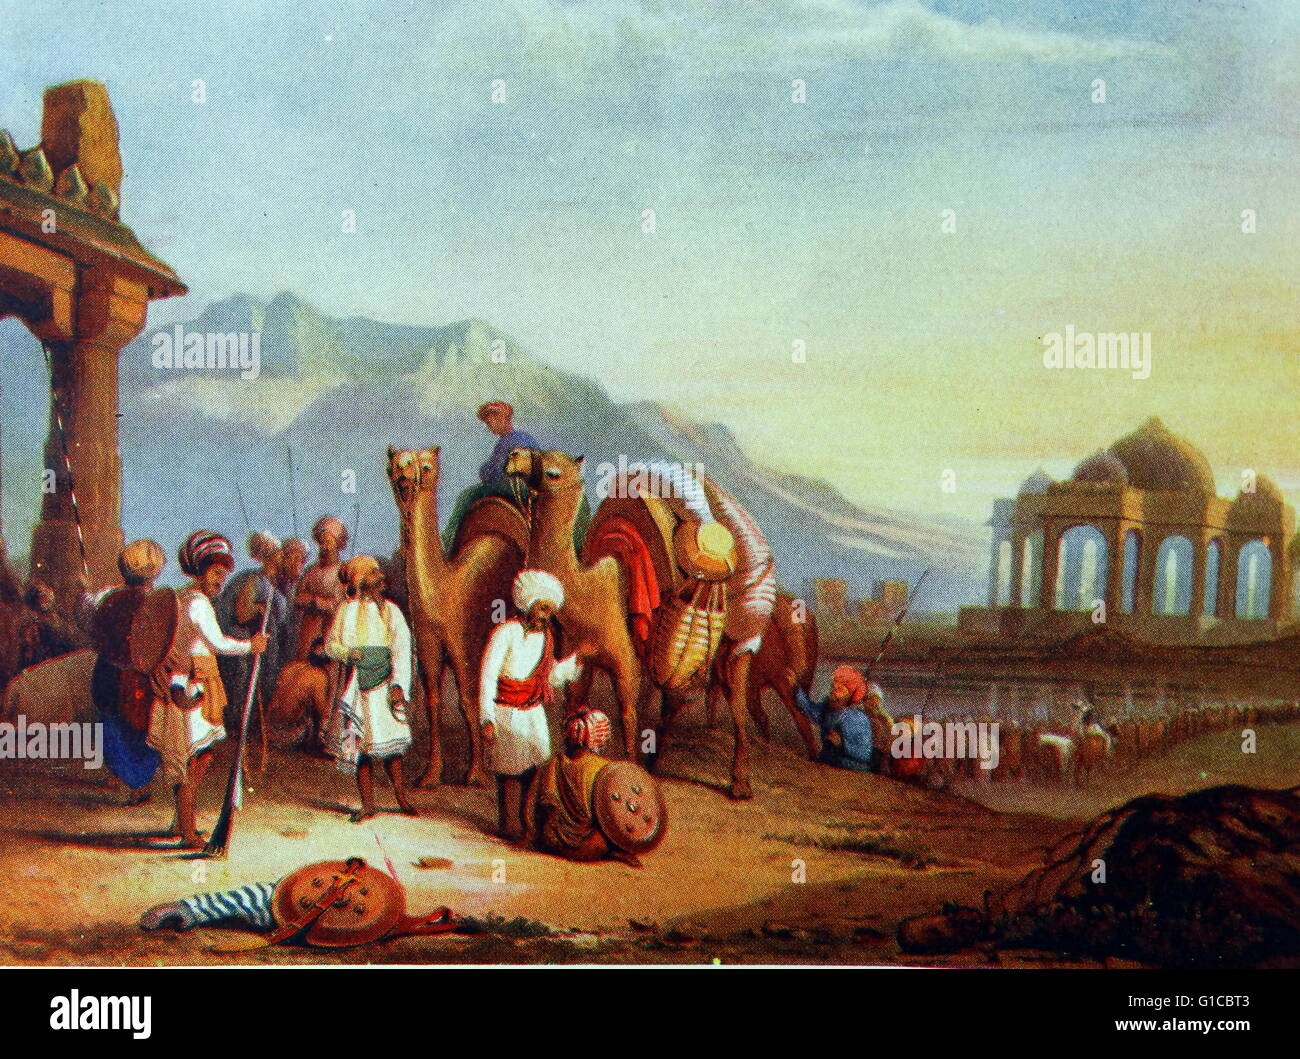 early nineteenth century caravan of merchants with camels. Kathiawar, in western India, - Stock Image